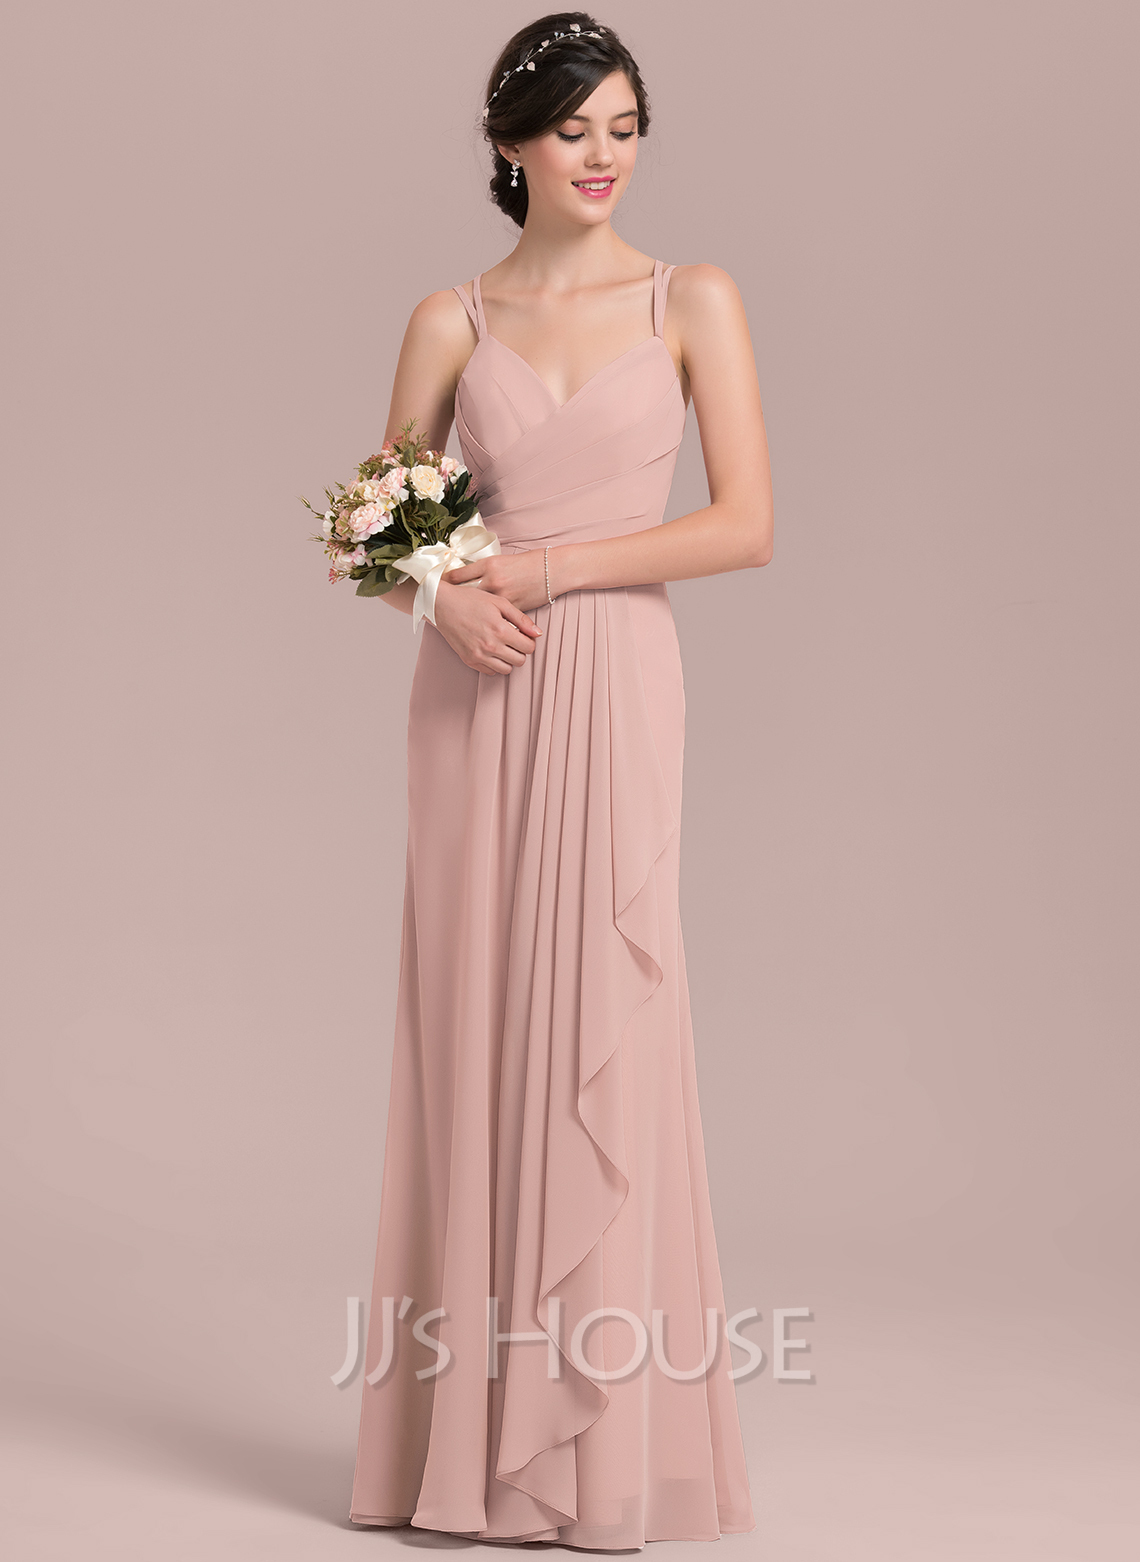 50d775995a3f A-Line Princess Sweetheart Floor-Length Chiffon Bridesmaid Dress With  Cascading Ruffles. Loading zoom